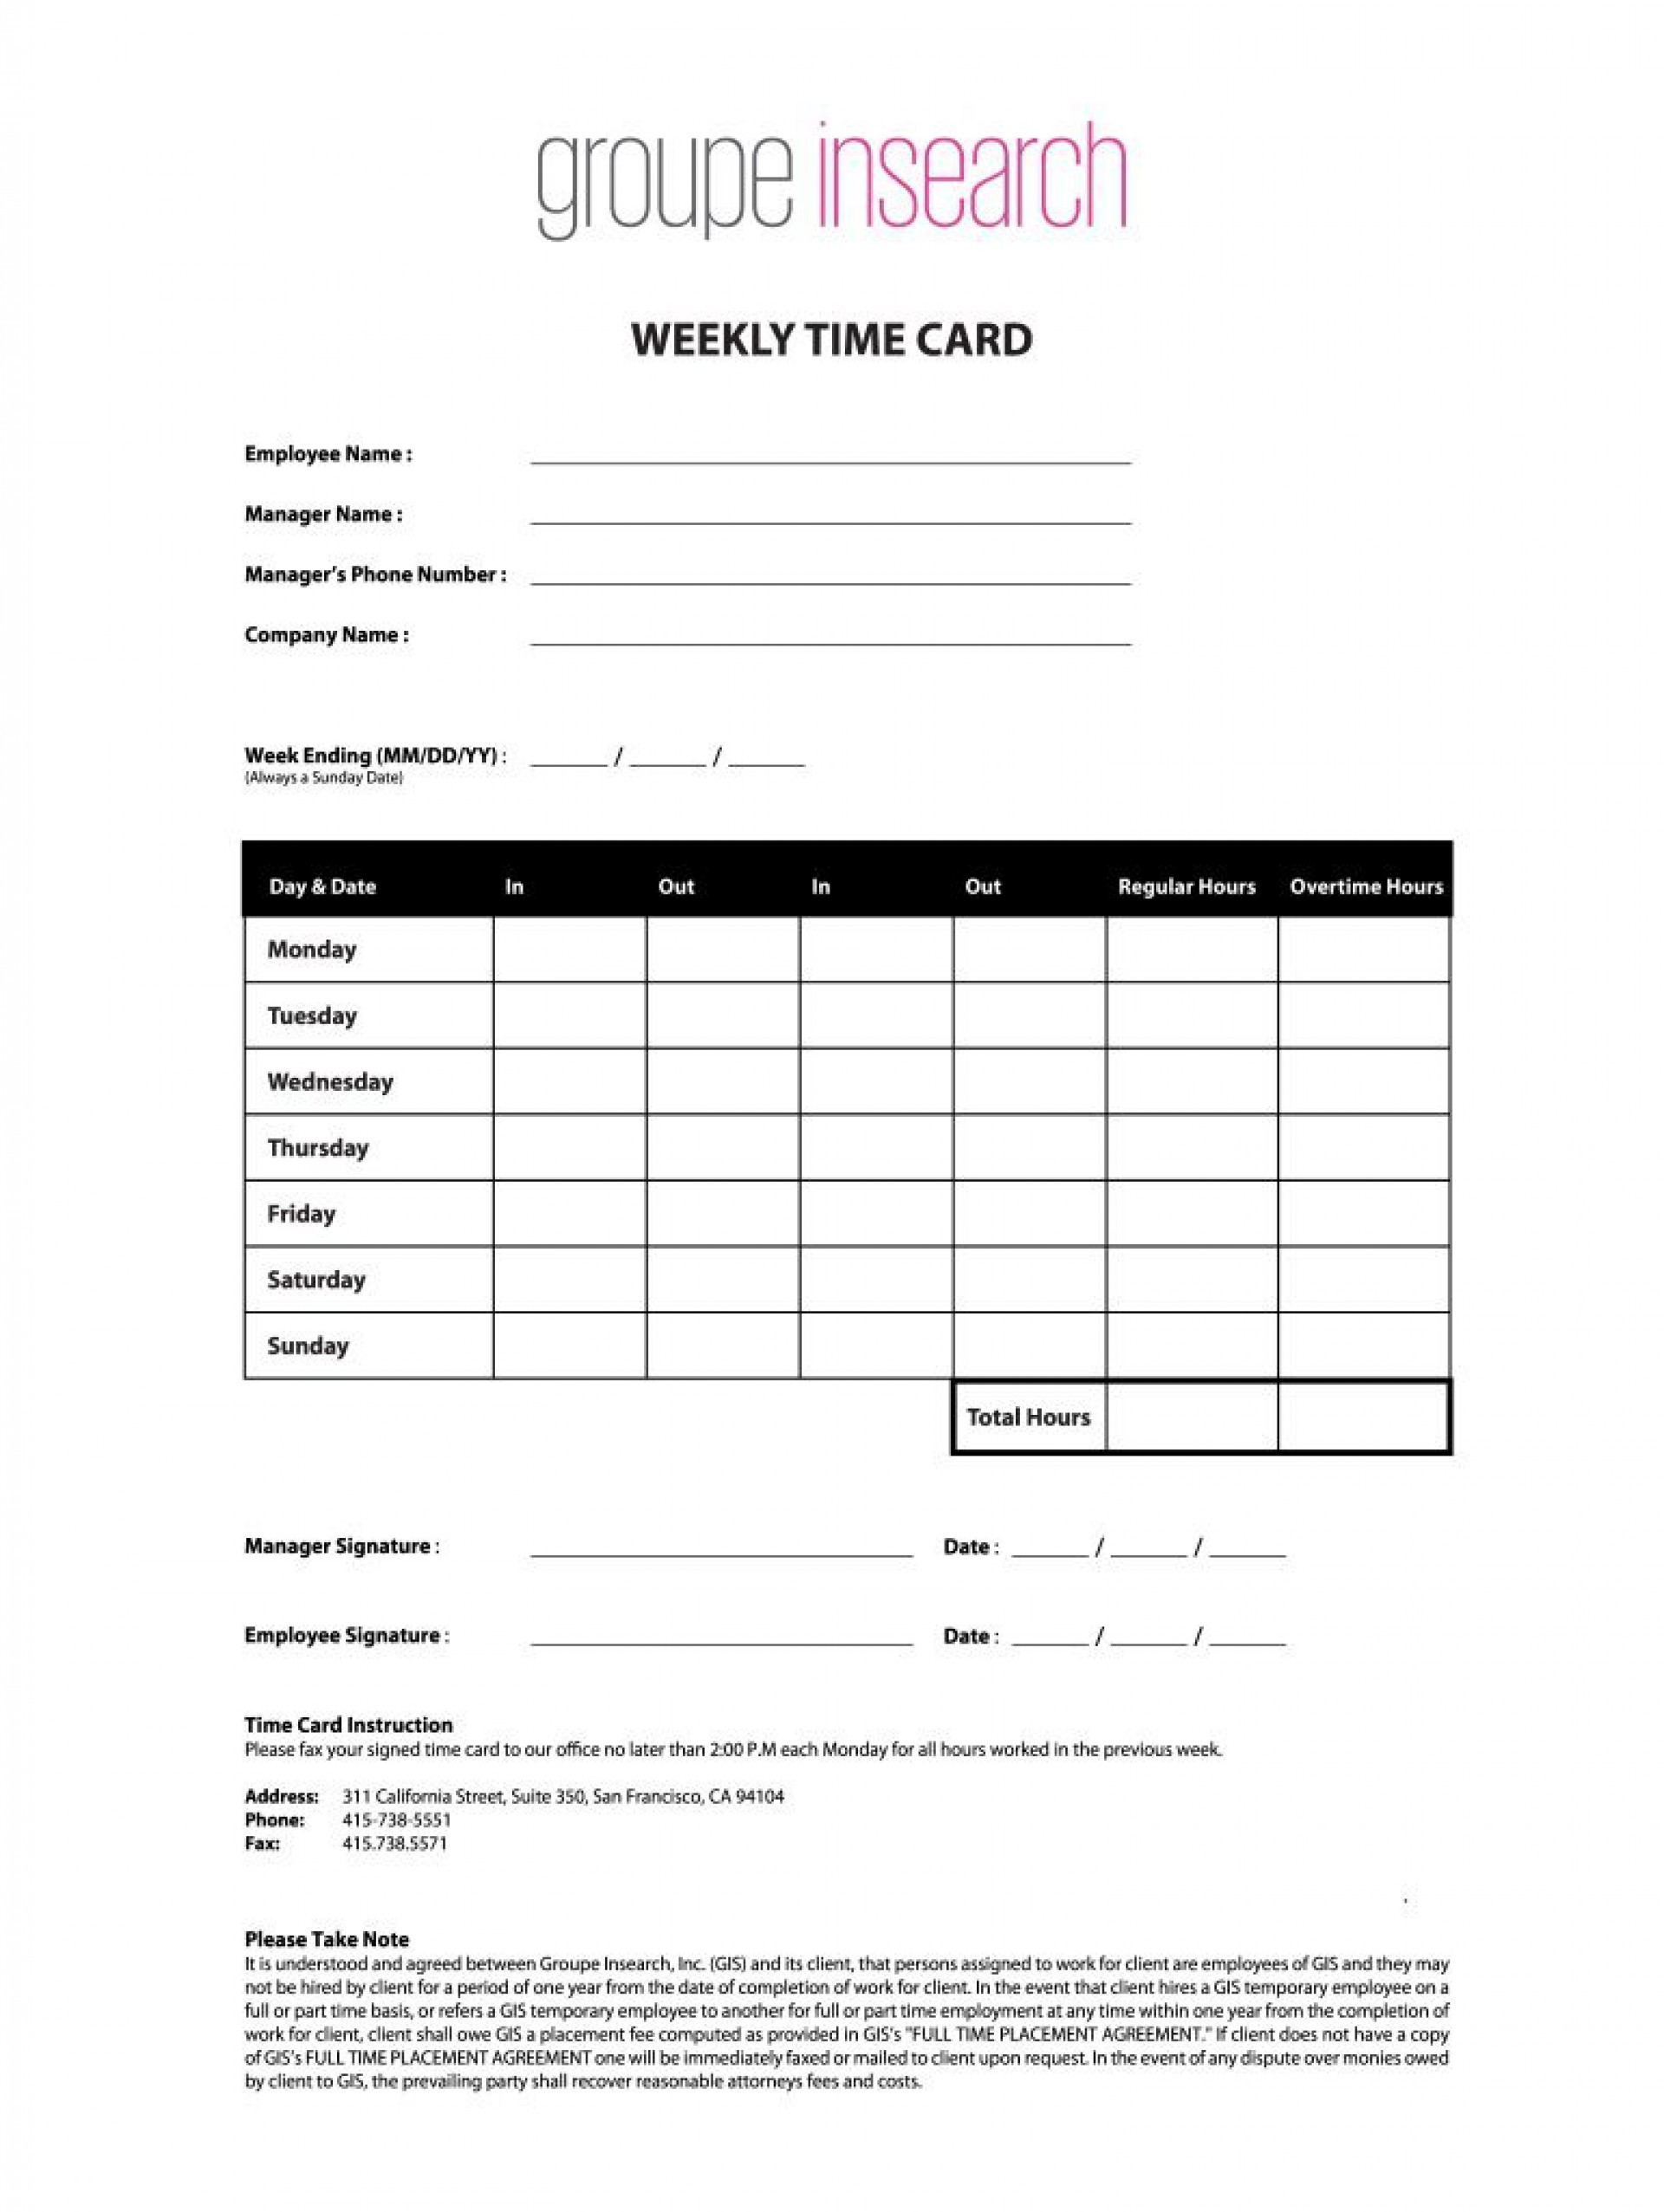 Weekly Time Card Template